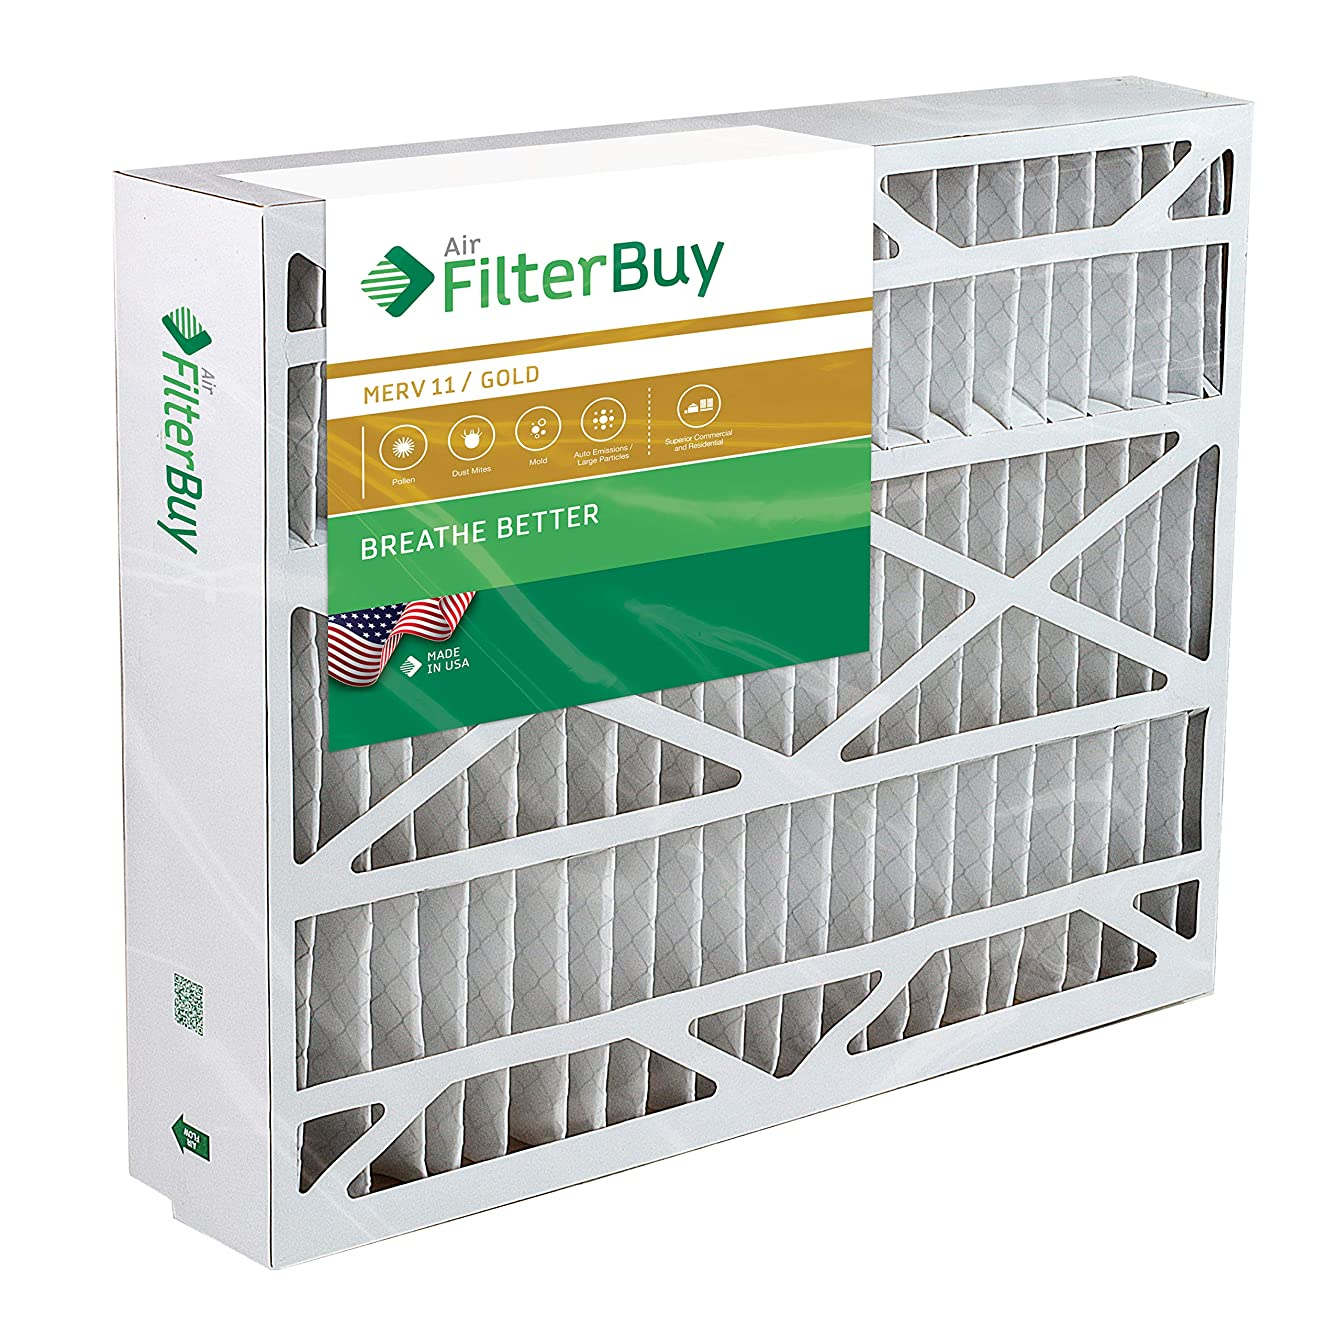 21x27x5 Trane Perfect Fit BAYFTFR21M Aftermarket Furnace Filter/Air Filter - AFB Gold (Merv 11). (1 Pack)